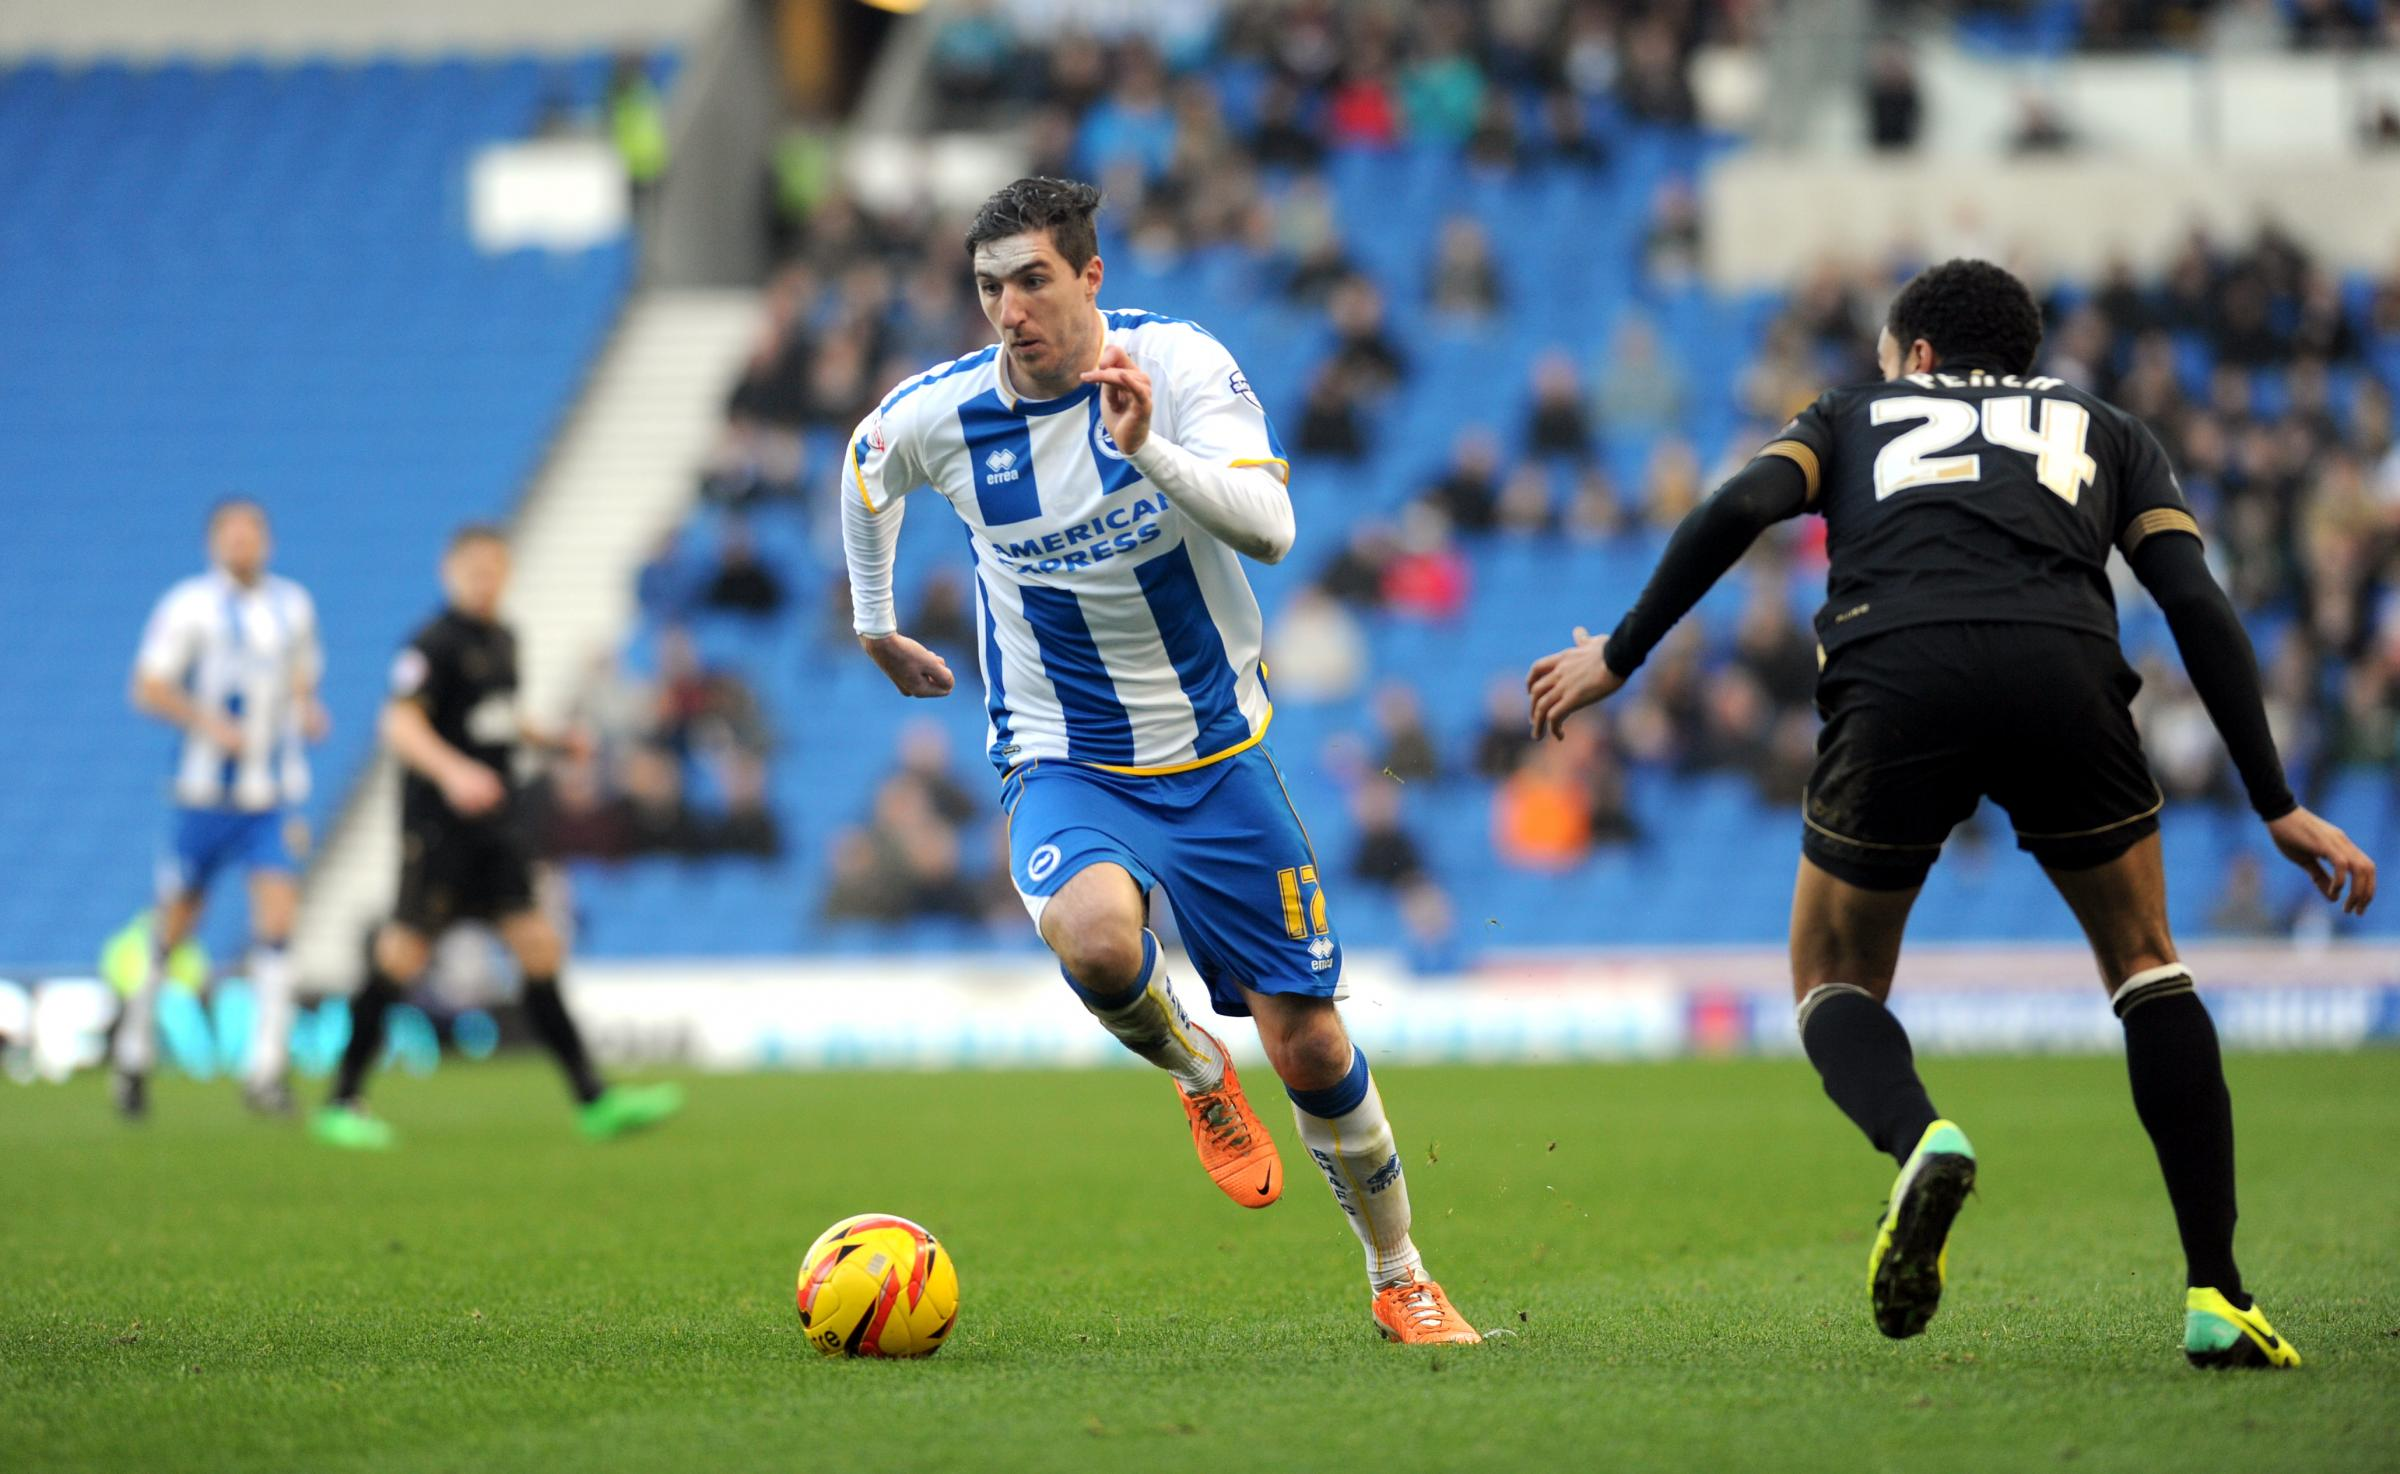 Stephen Ward says Albion have no fear going away from home